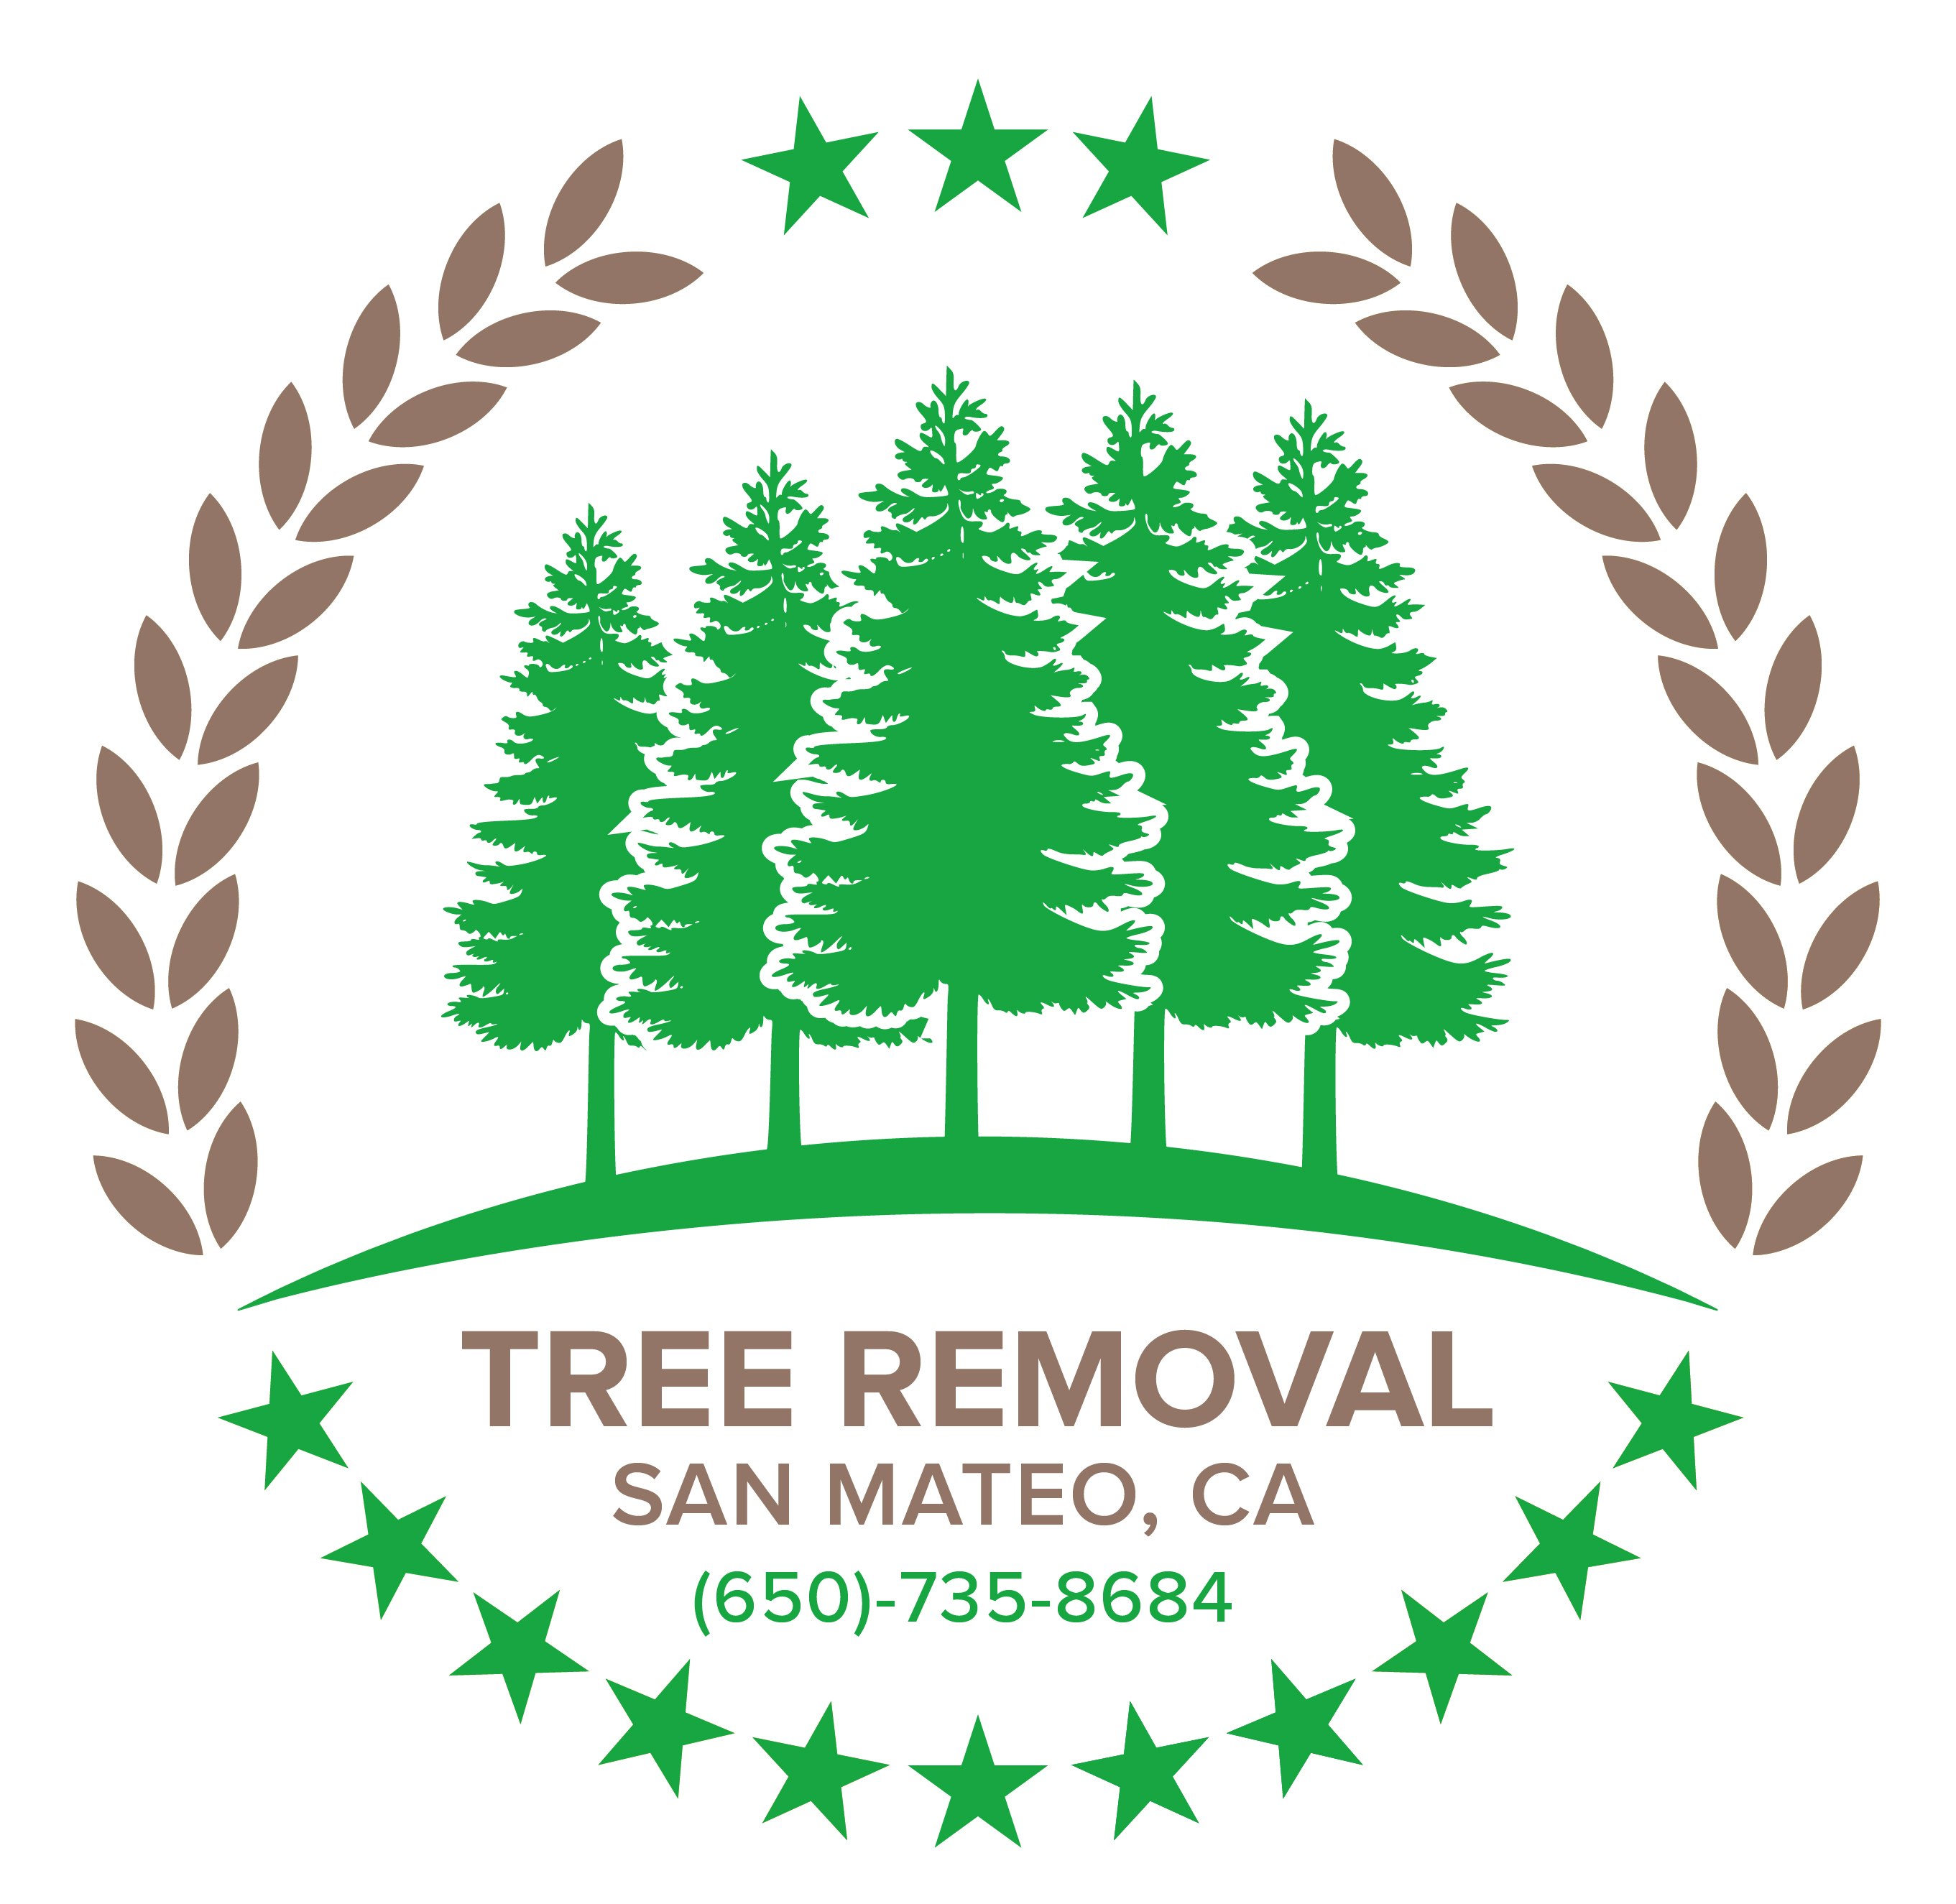 Tree Removal San Mateo